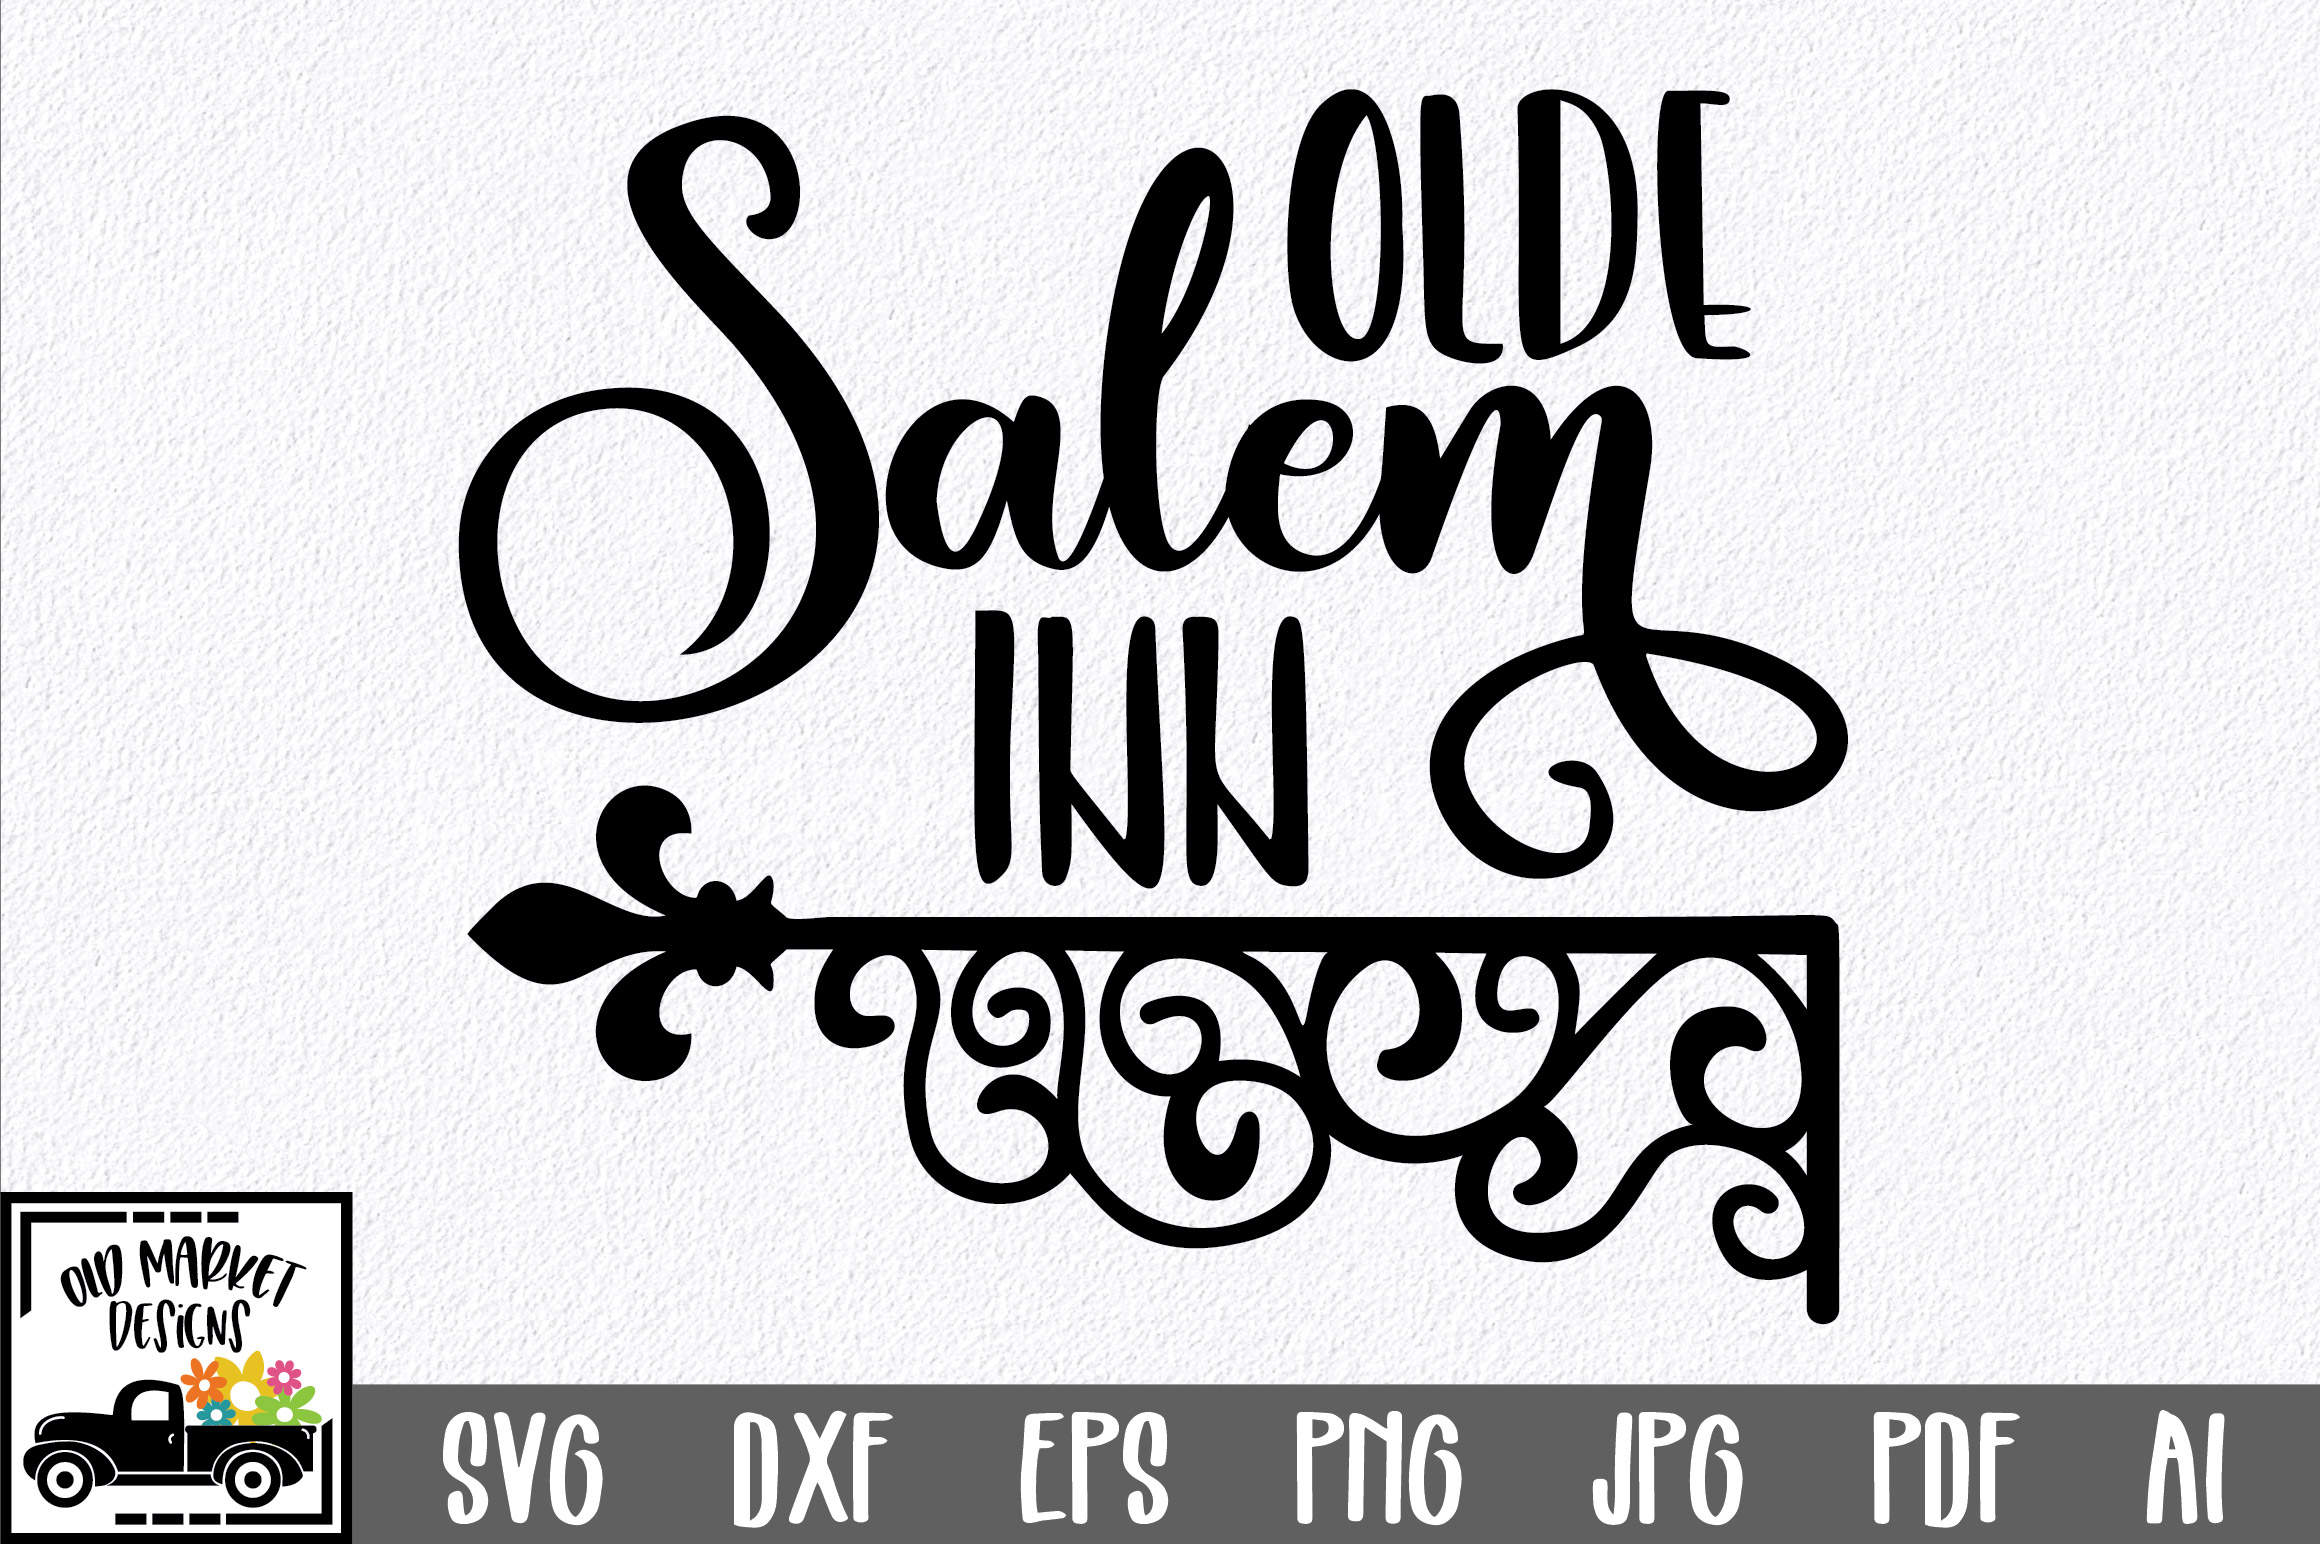 Download Free Olde Salem Inn Svg Cut File Graphic By Oldmarketdesigns for Cricut Explore, Silhouette and other cutting machines.